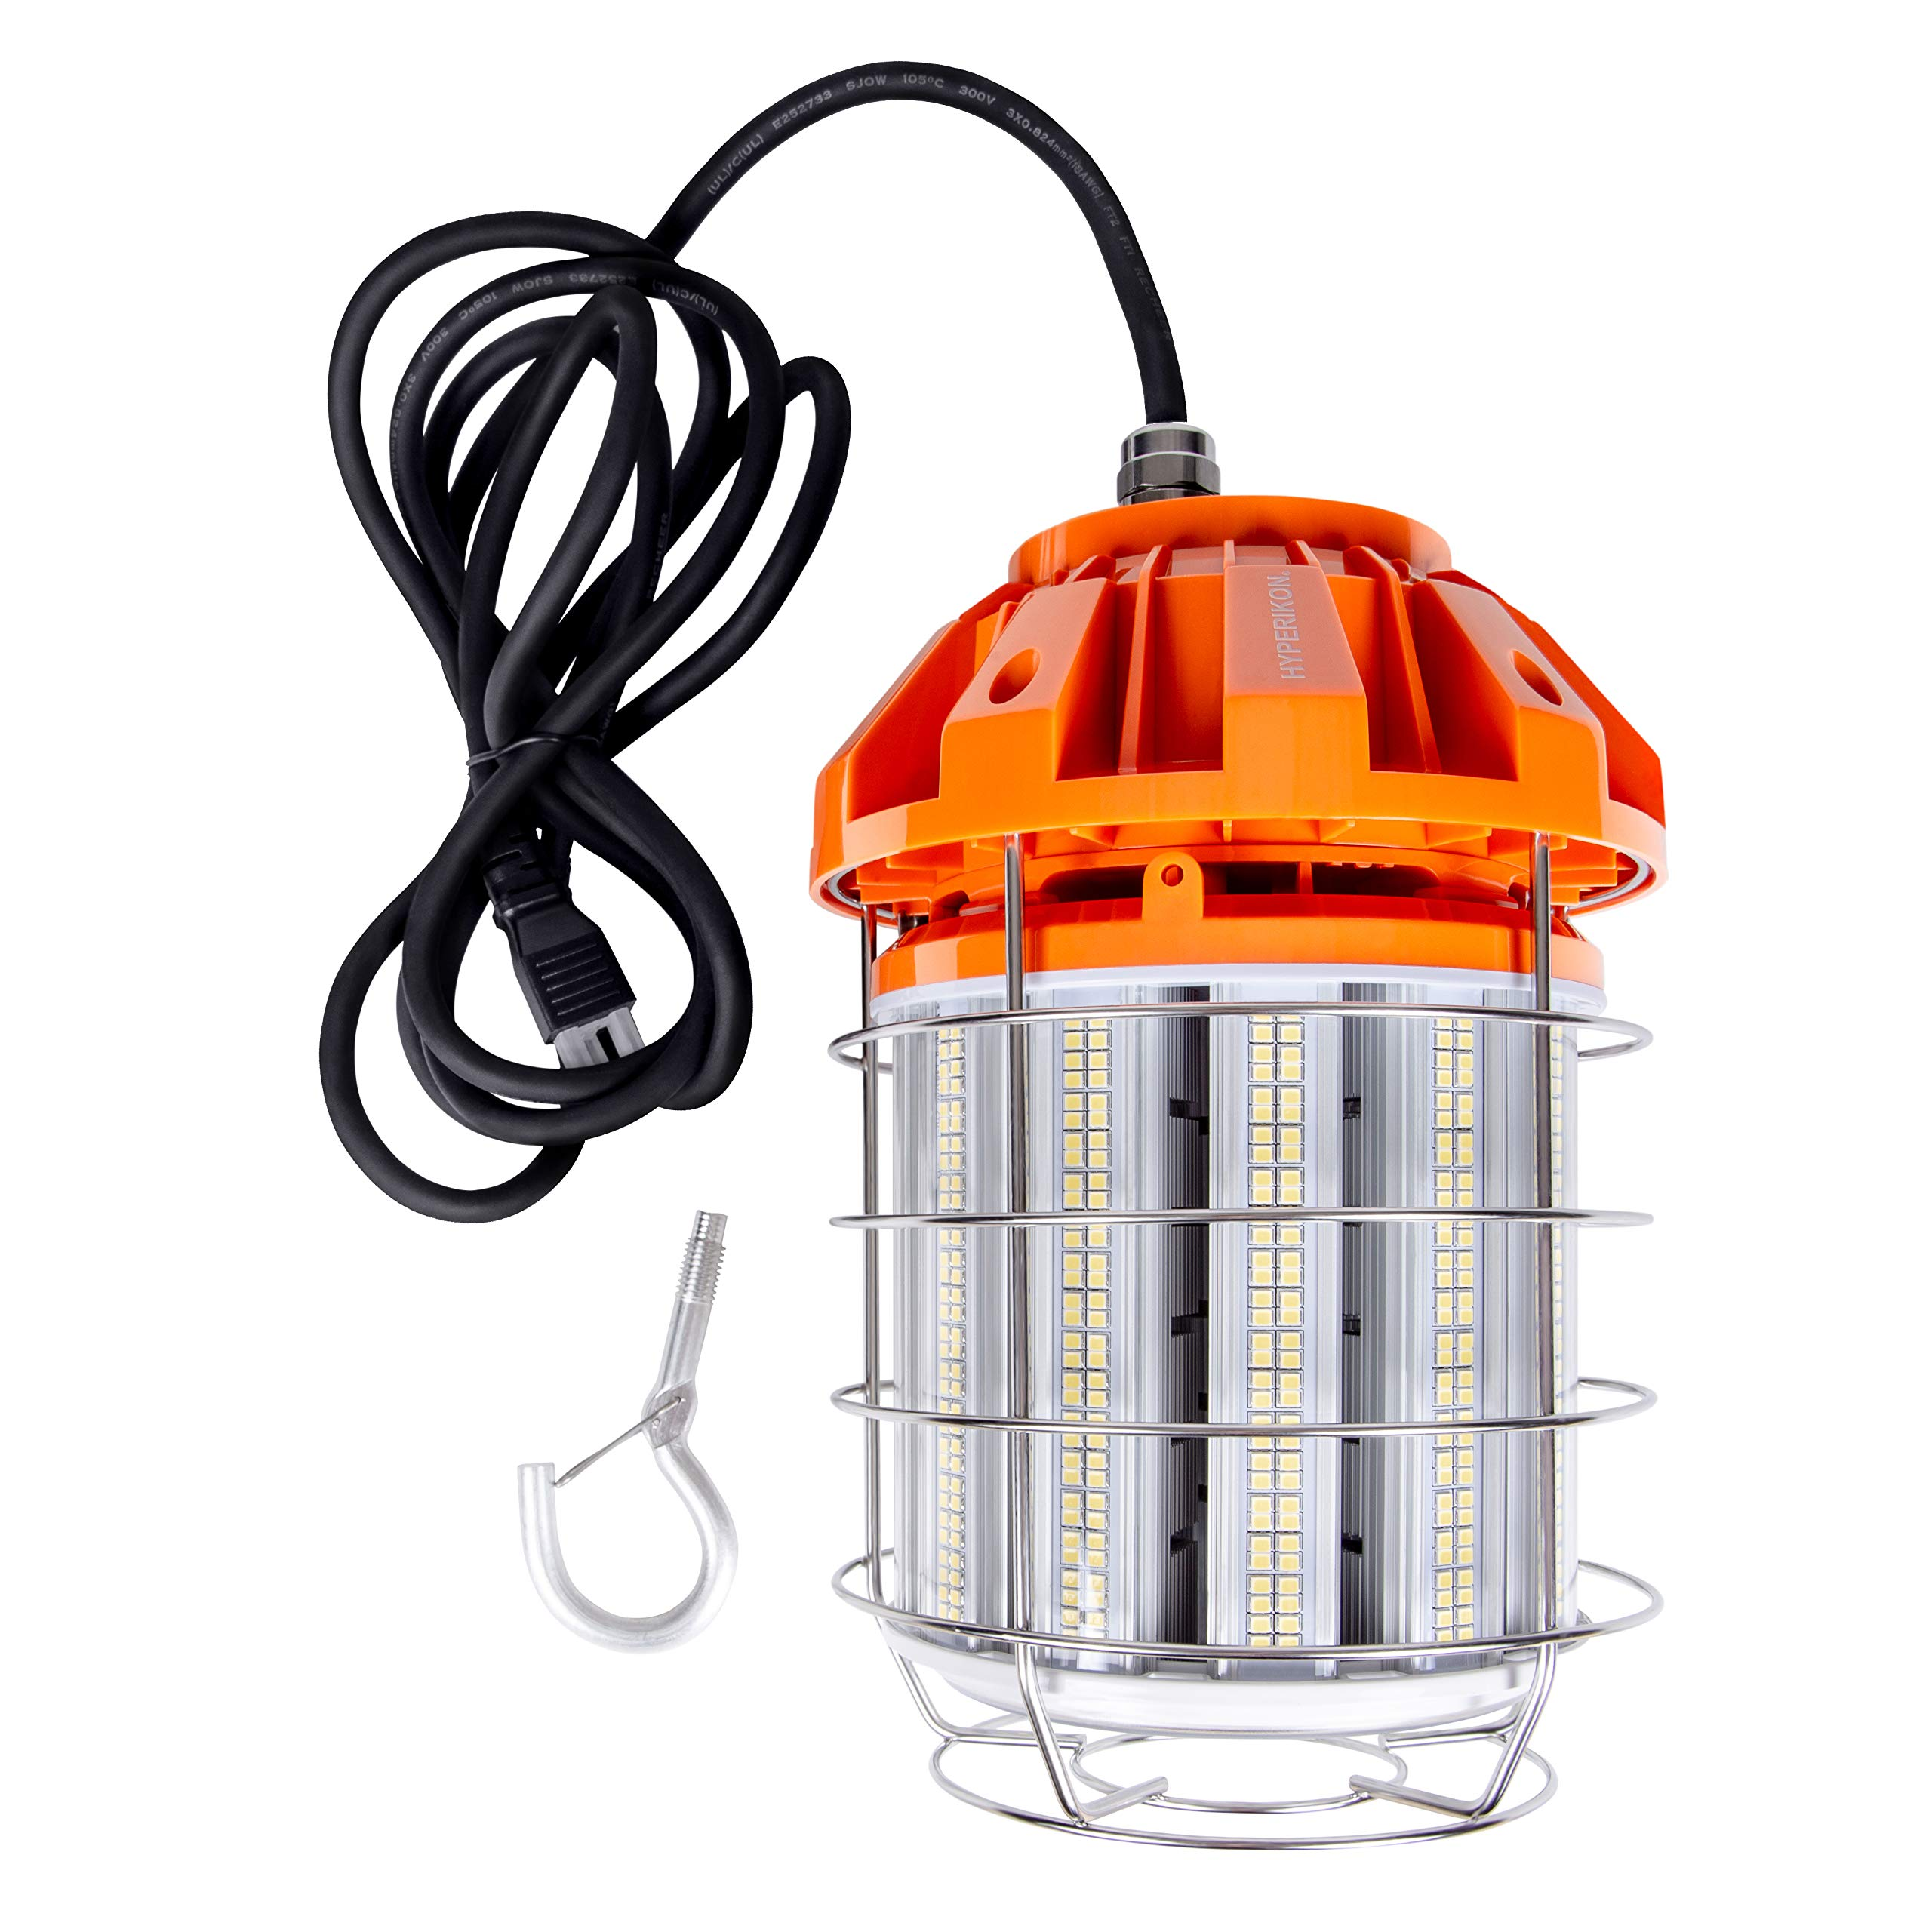 Hyperikon 125W LED Temporary Work Light Hanging for Construction/Workshop/Jobsite, Corded Portable LED Work Light Fixture, 5000K, 120V, UL